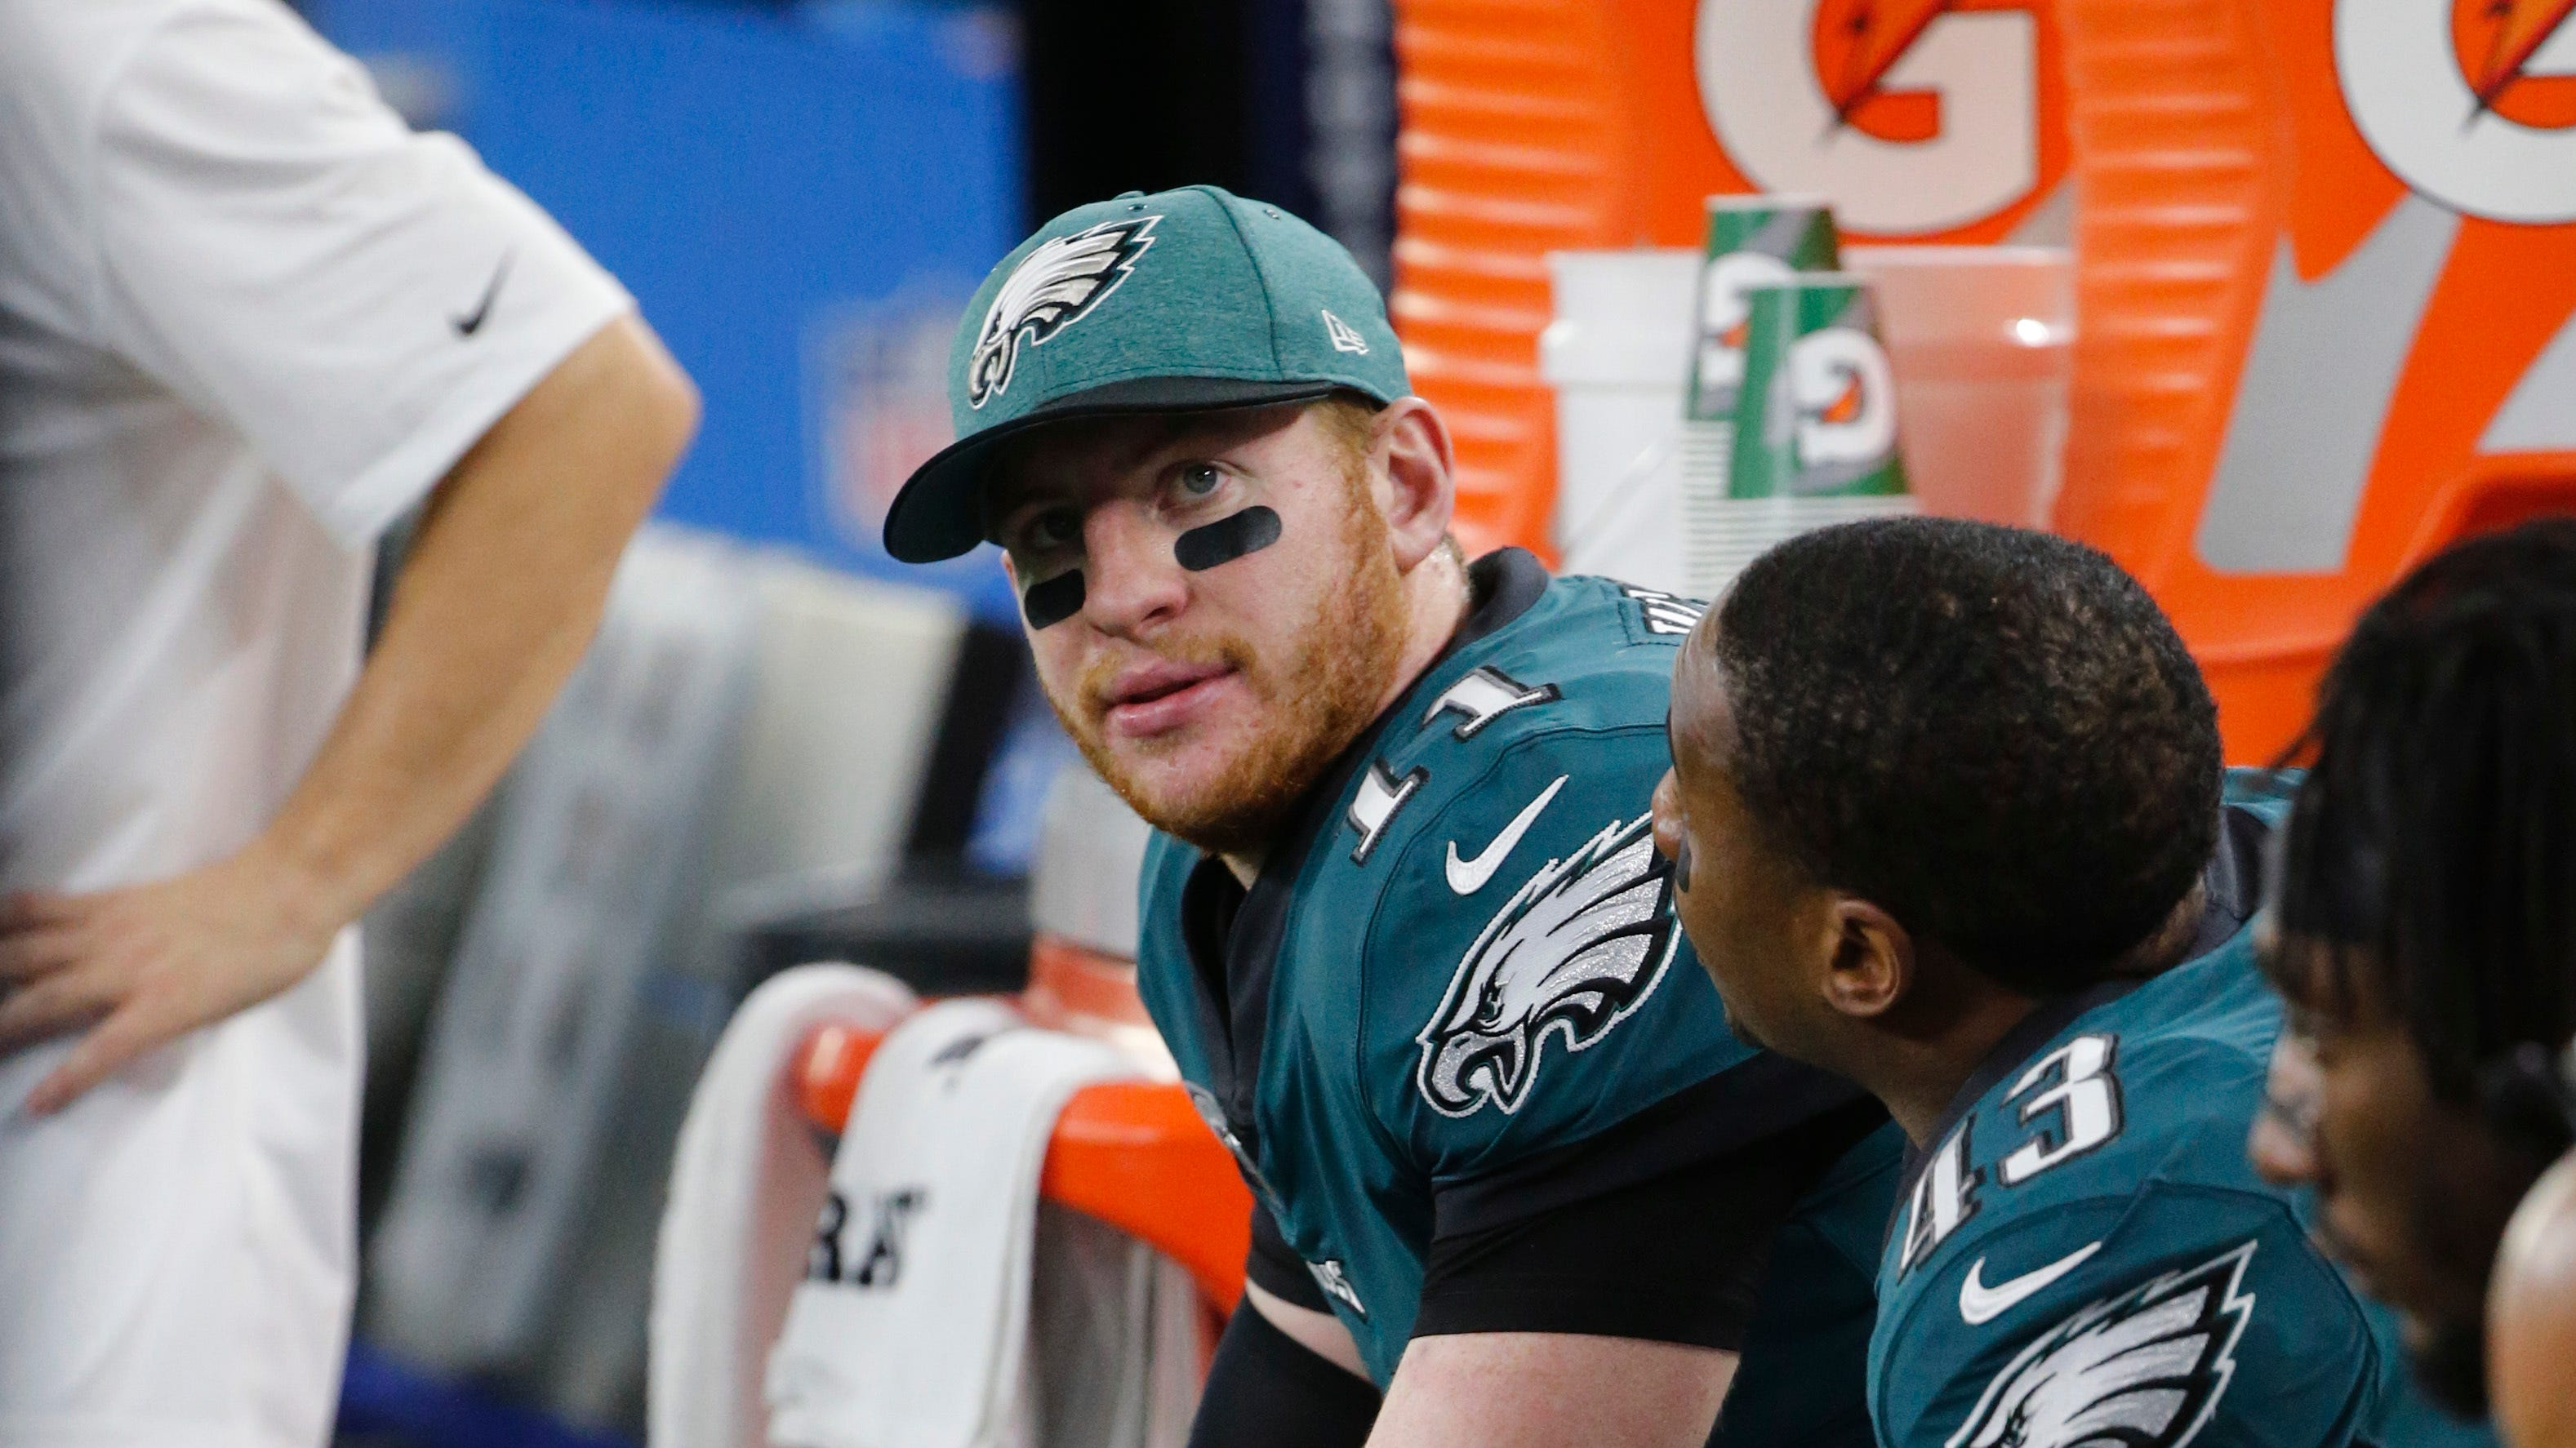 The Eagles will have to determine if Wentz can play through the injury or if he's better off sitting out the rest of the season.